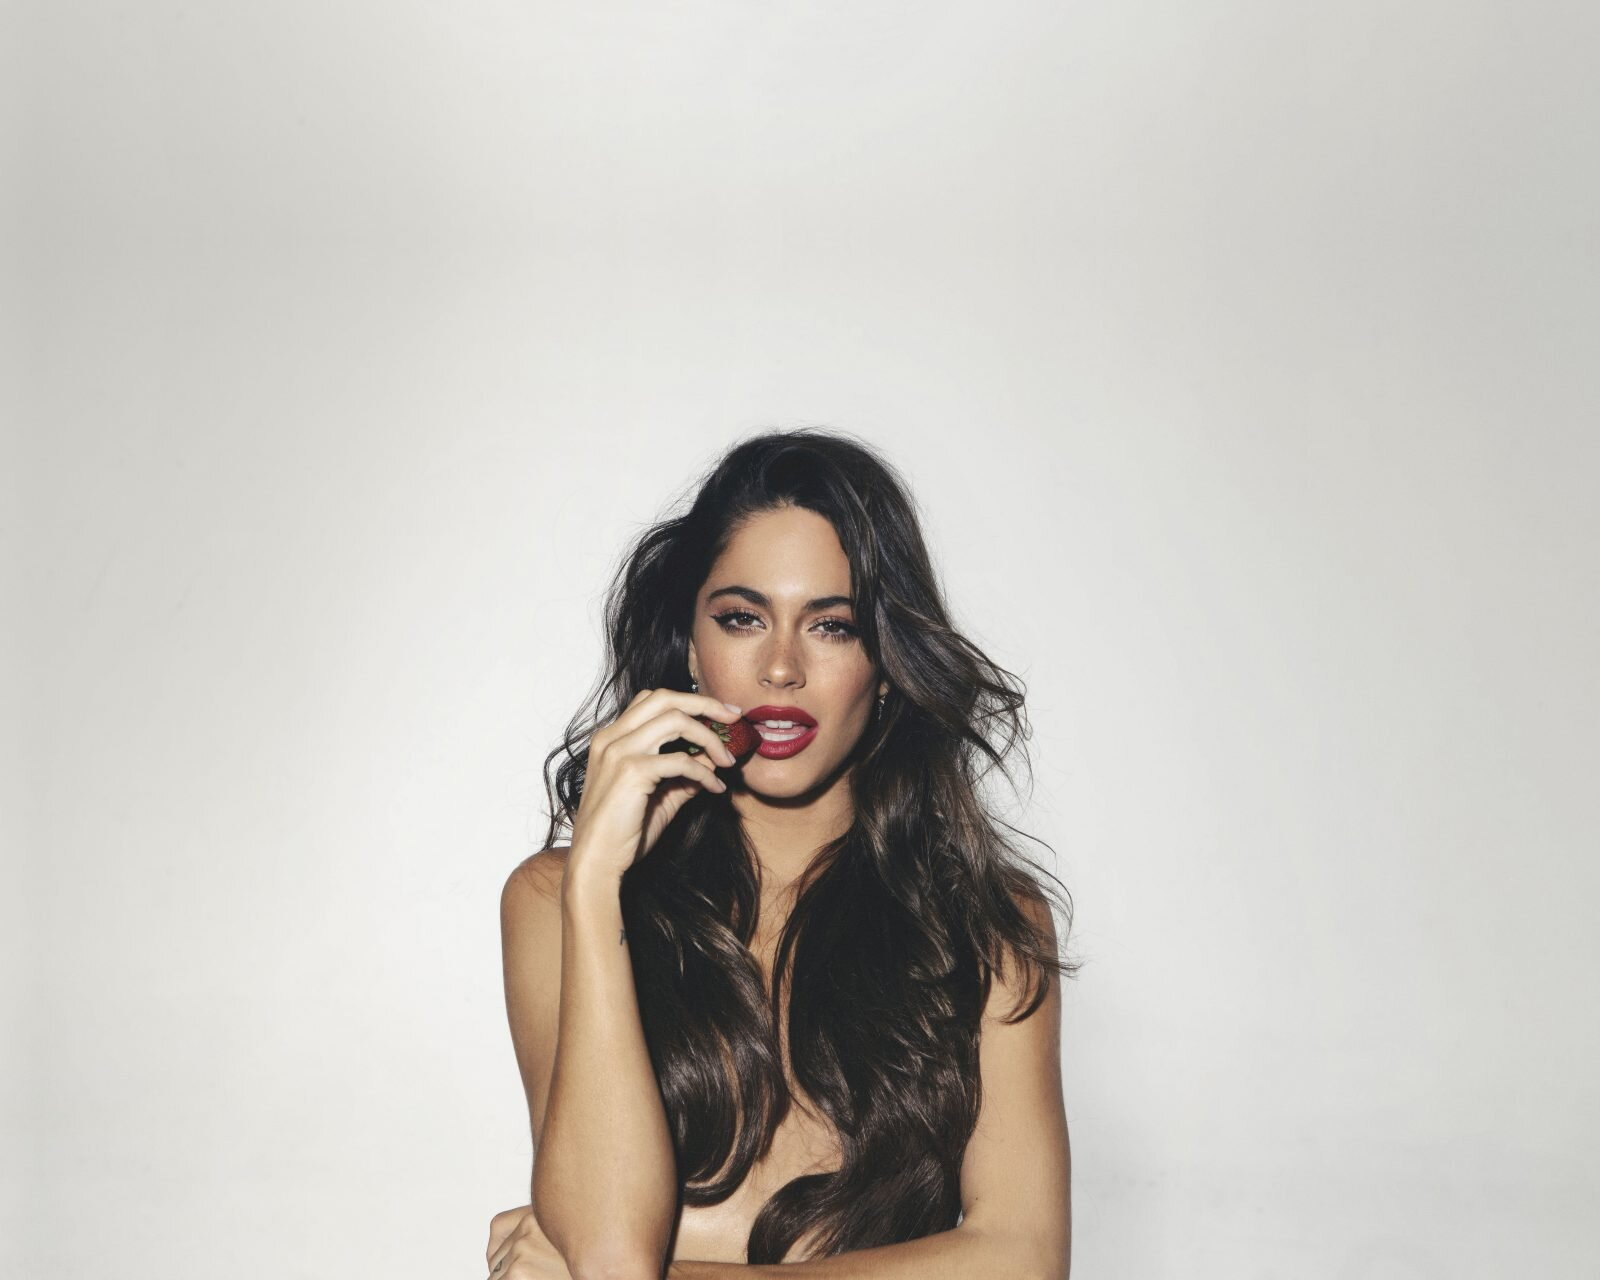 Argentine singer Tini. A common Argentinian girl aesthetic!